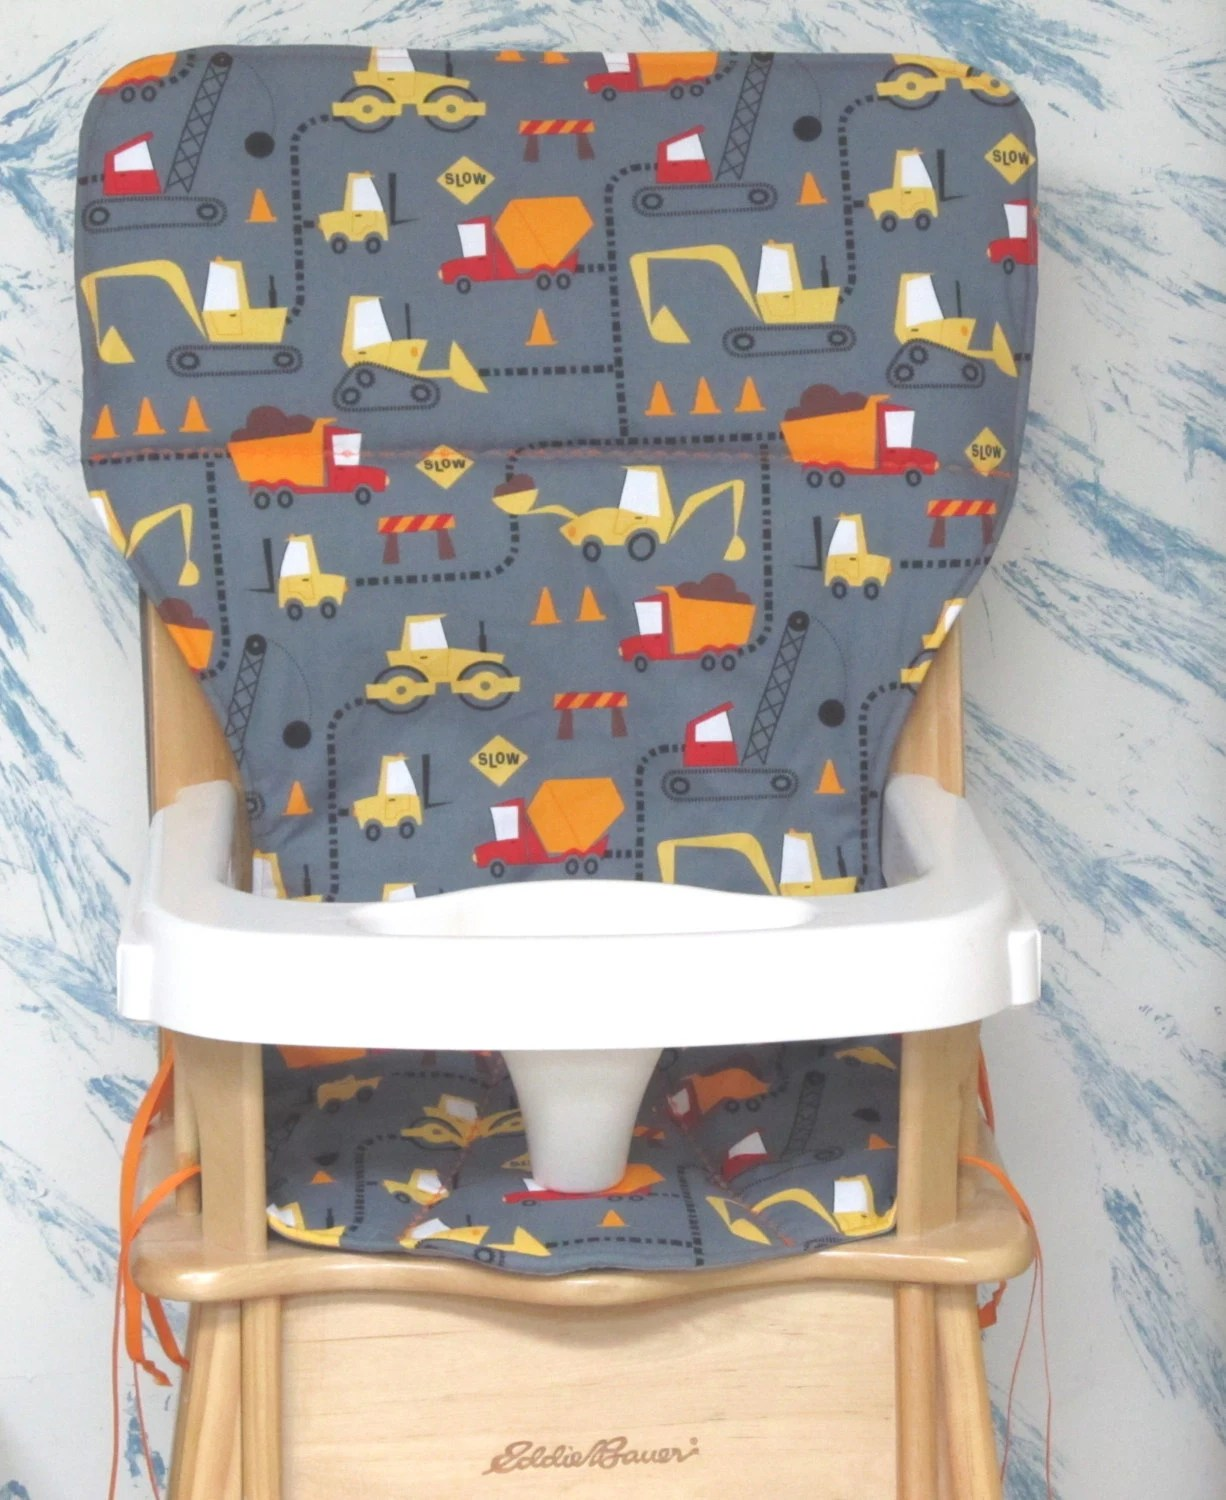 eddie bauer high chair replacement tray hanging pod chairs australia jenny lind wood cover pad cone zone